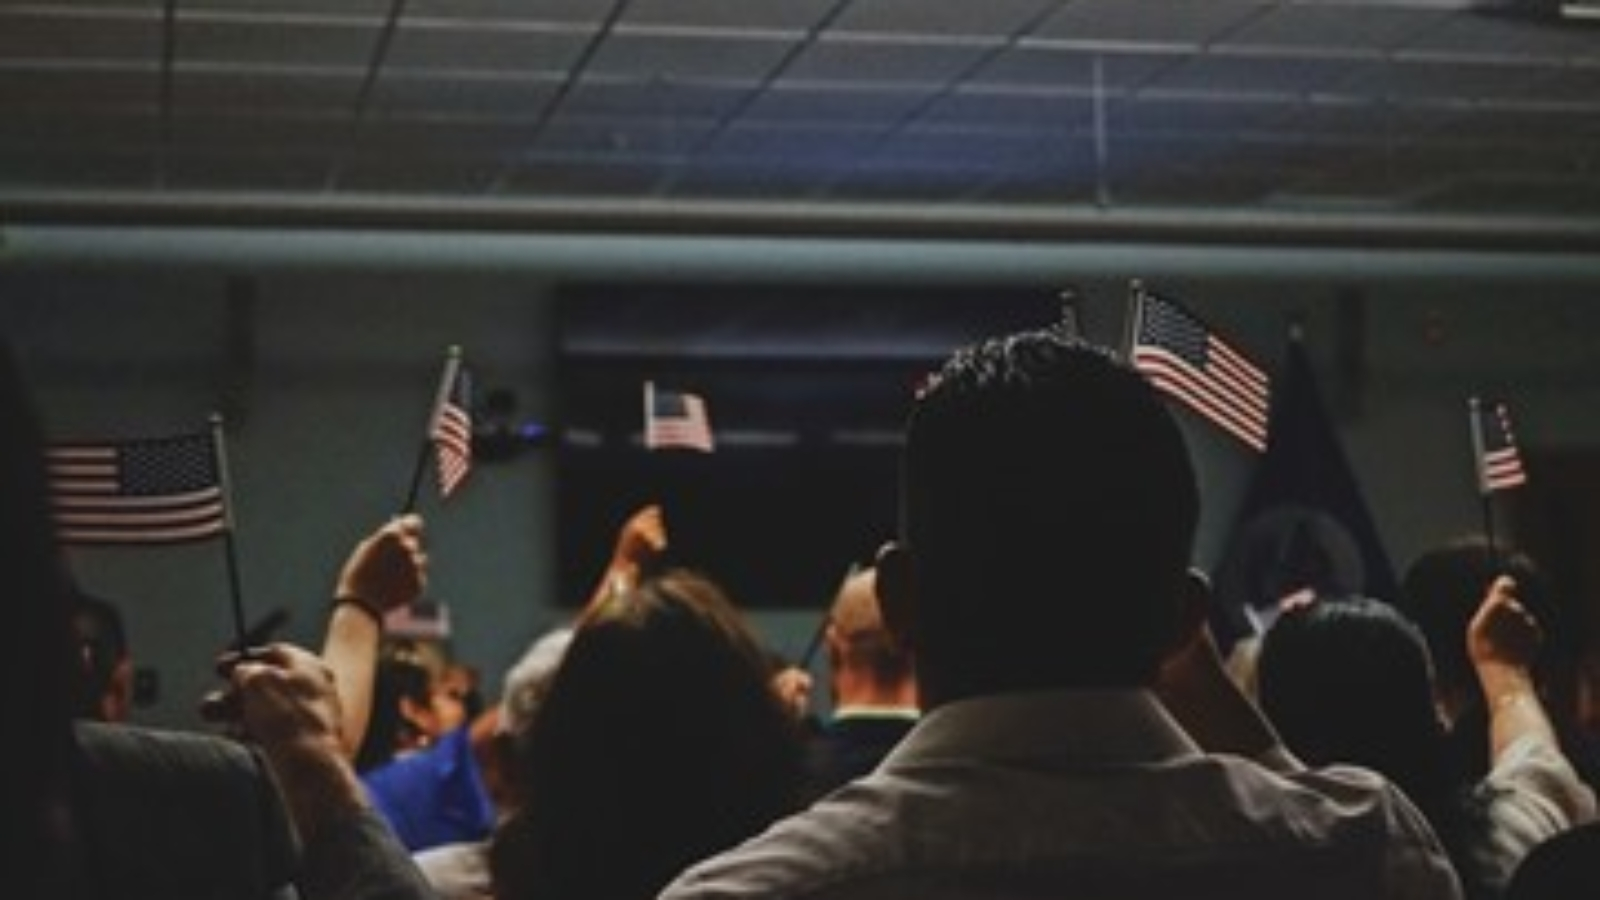 immigrants and non-citizens holding US flags at a conference